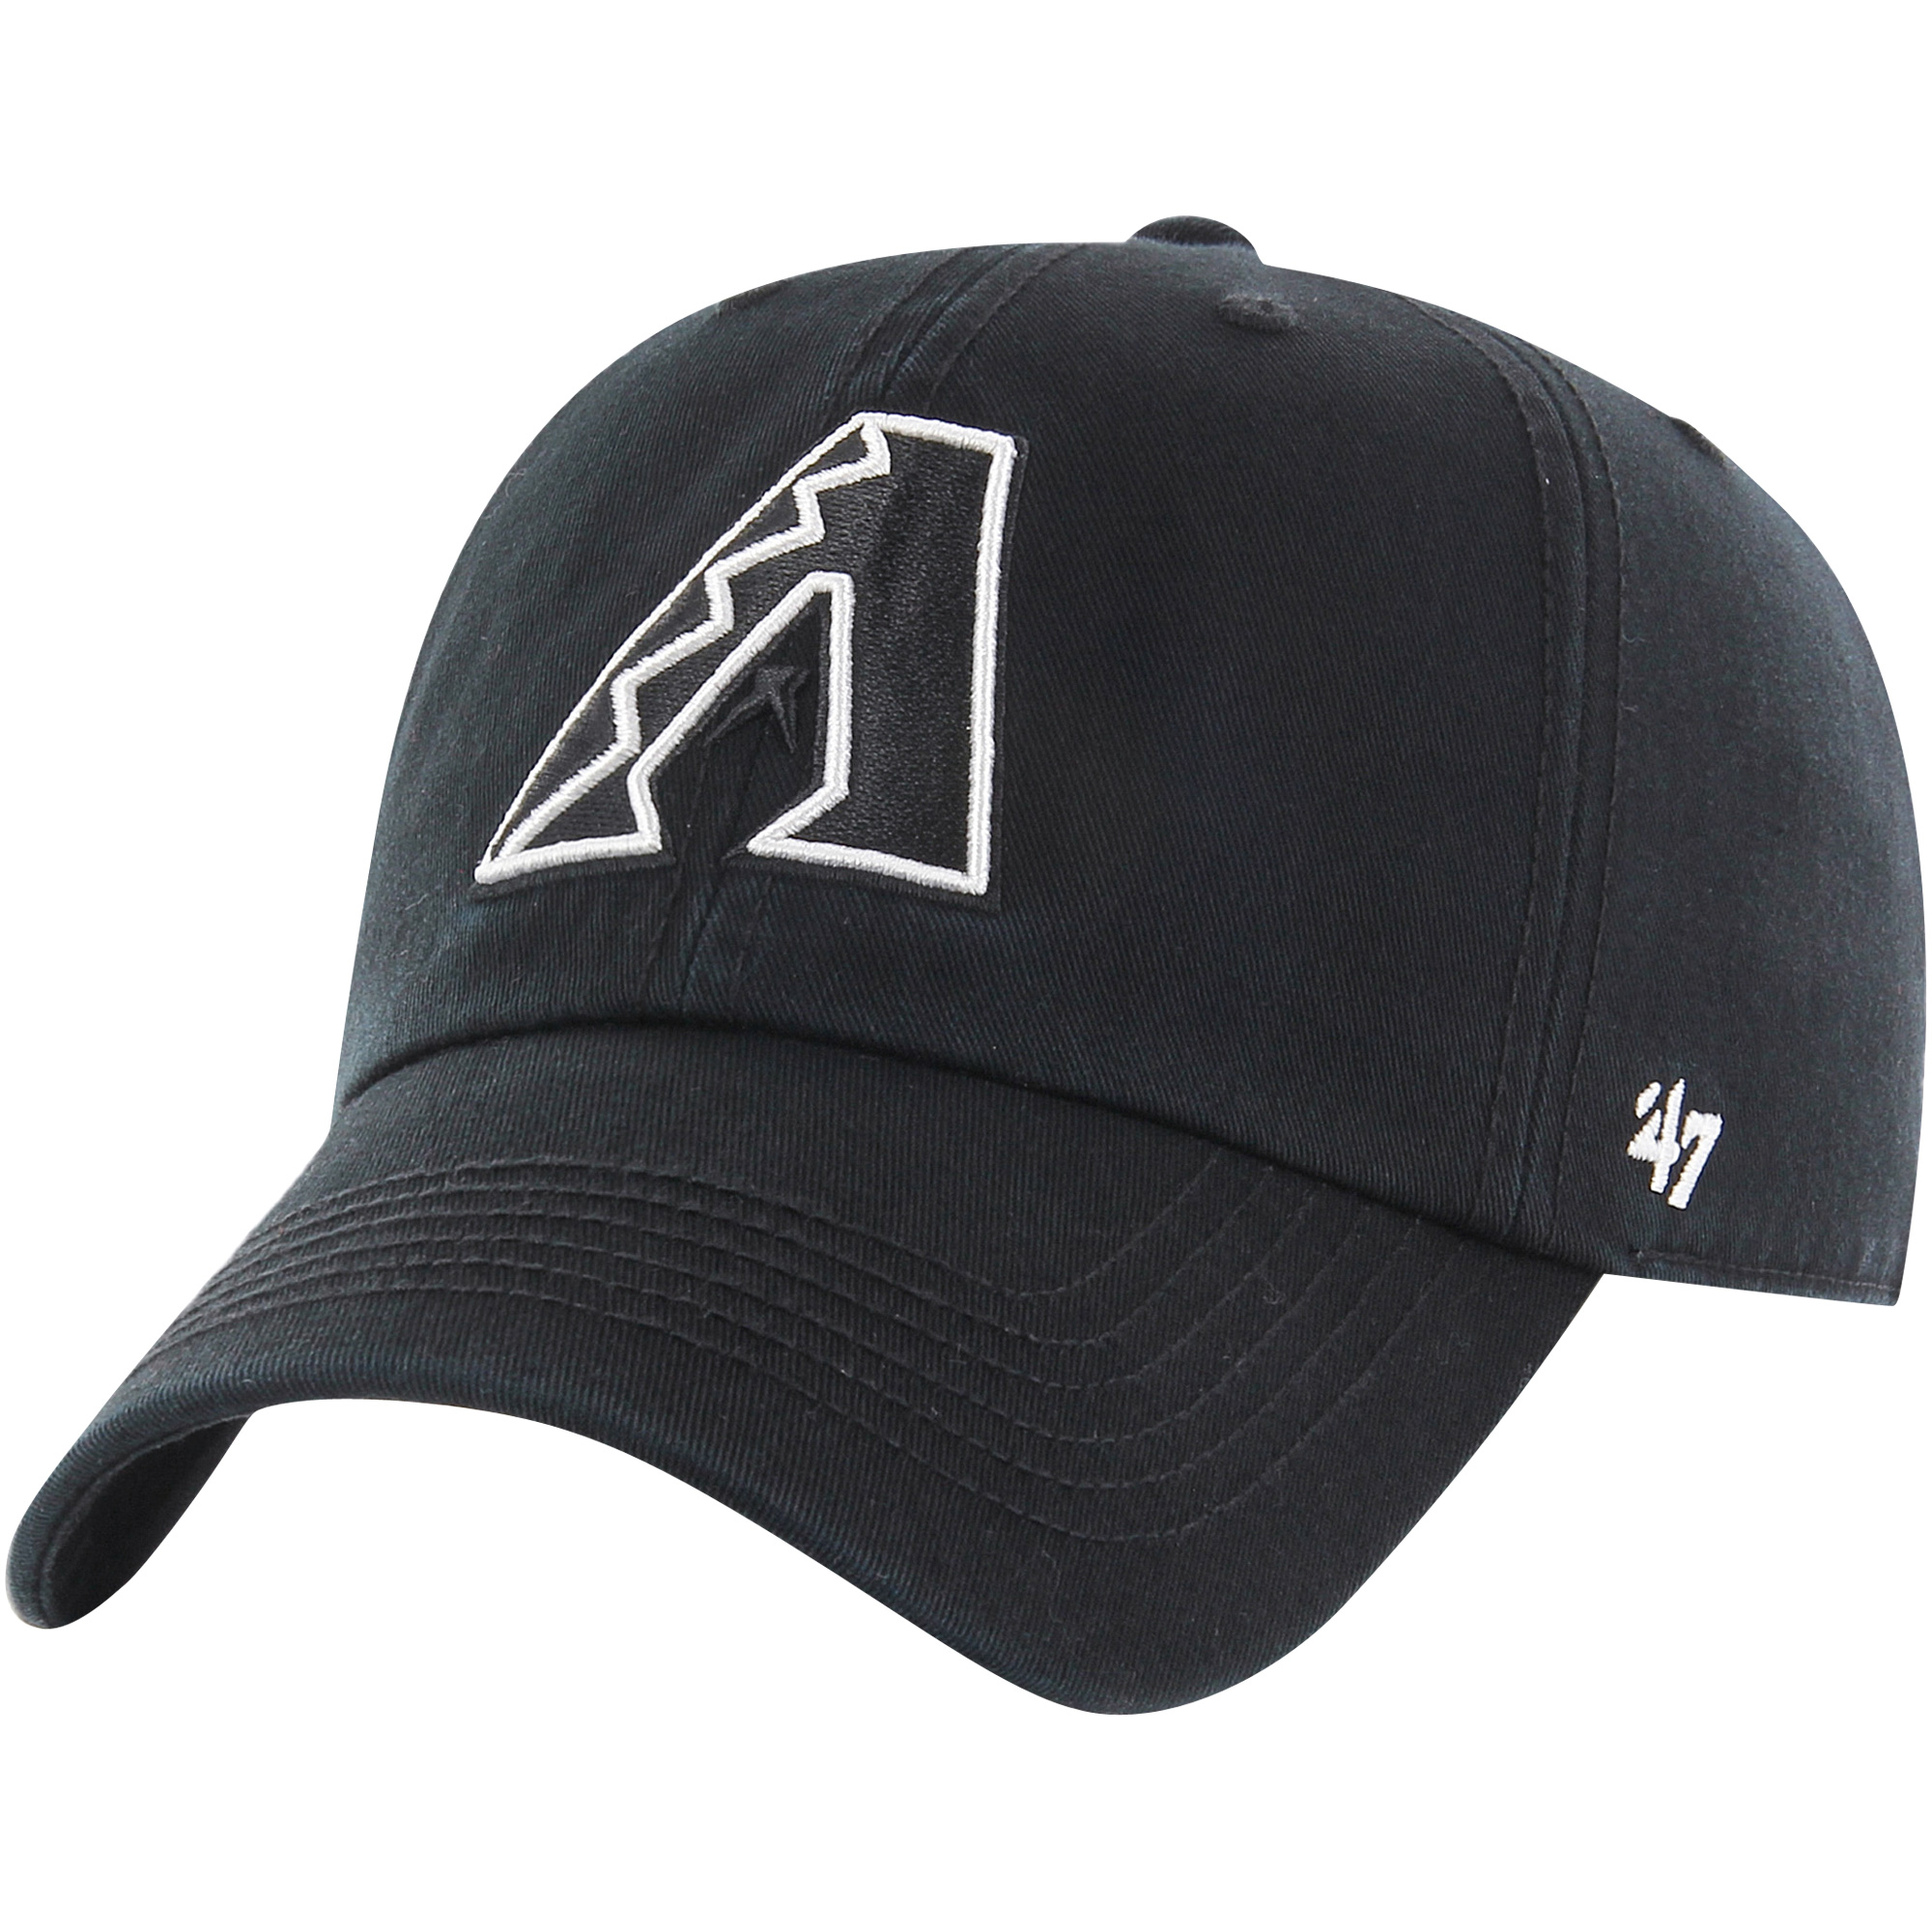 Arizona Diamondbacks '47 Black Out Franchise Fitted Hat - Black